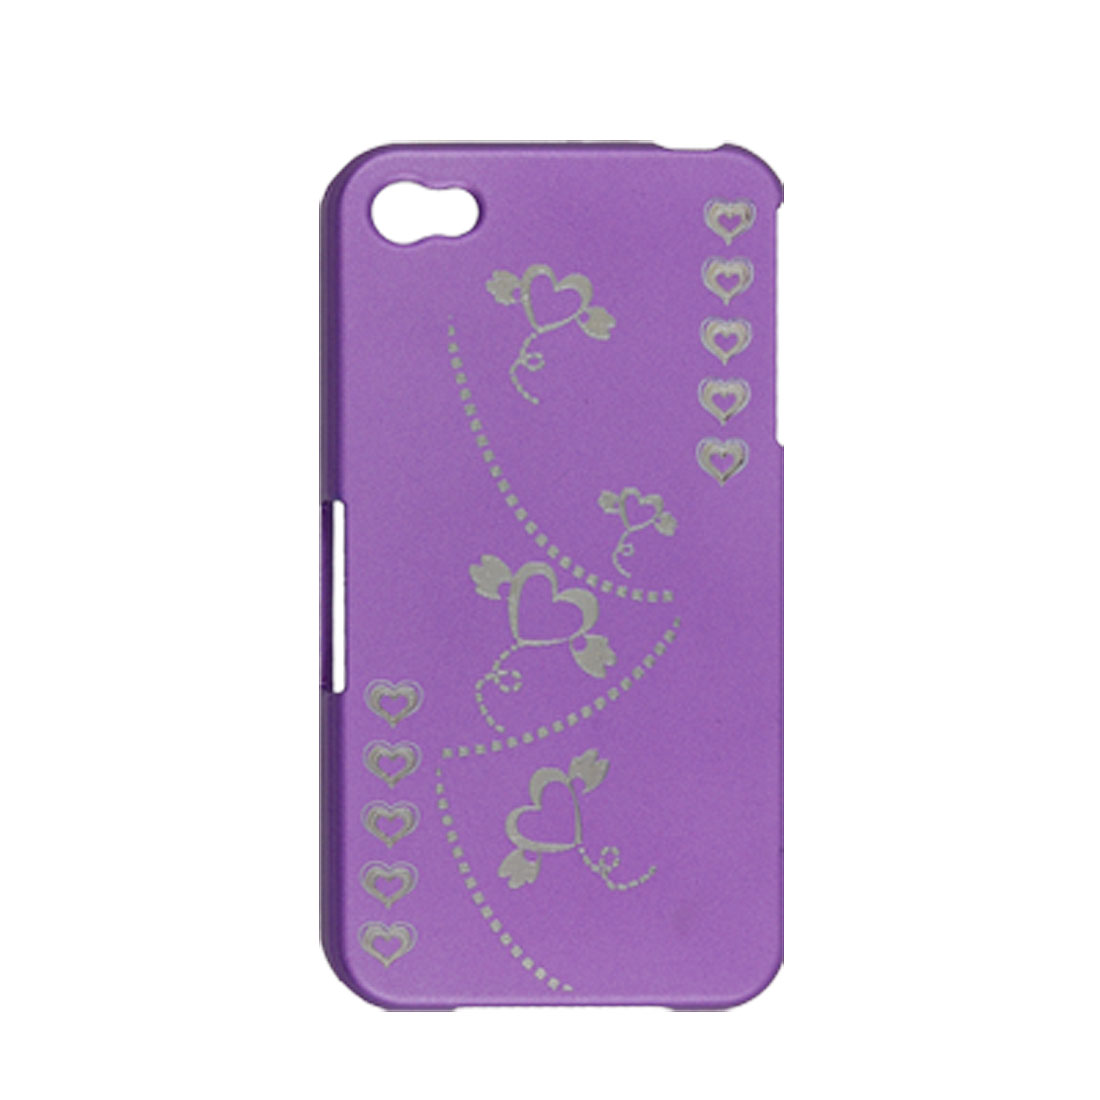 Purple Small Heart Print Rubberized Hard Plastic Case for Apple iPhone 4 4G